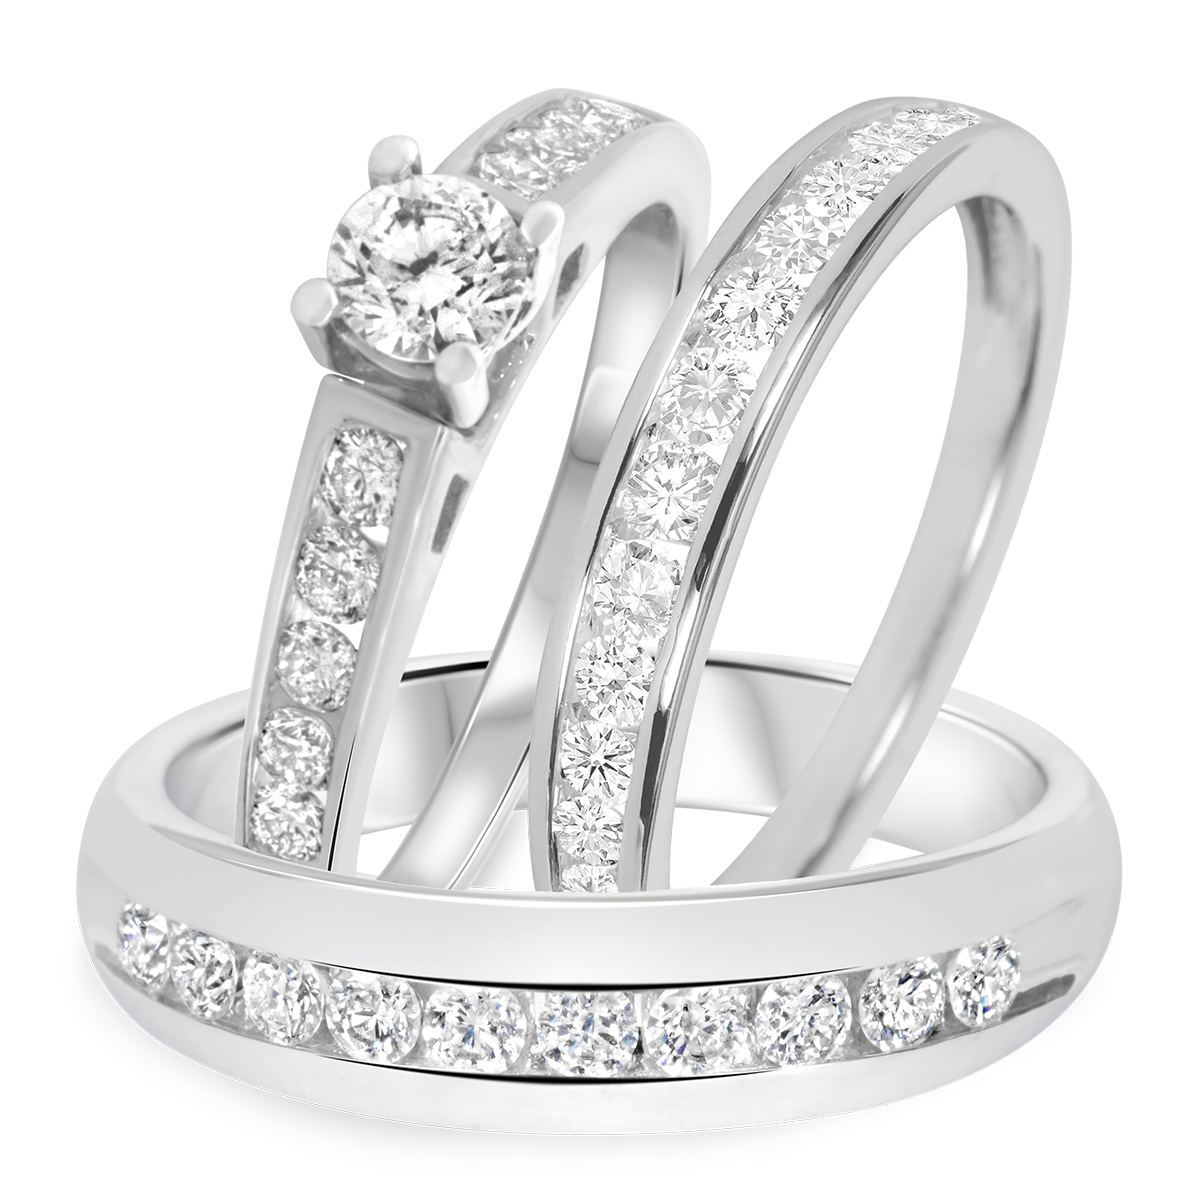 tw diamond trio matching wedding ring set 14k white gold - White Gold Wedding Rings Sets